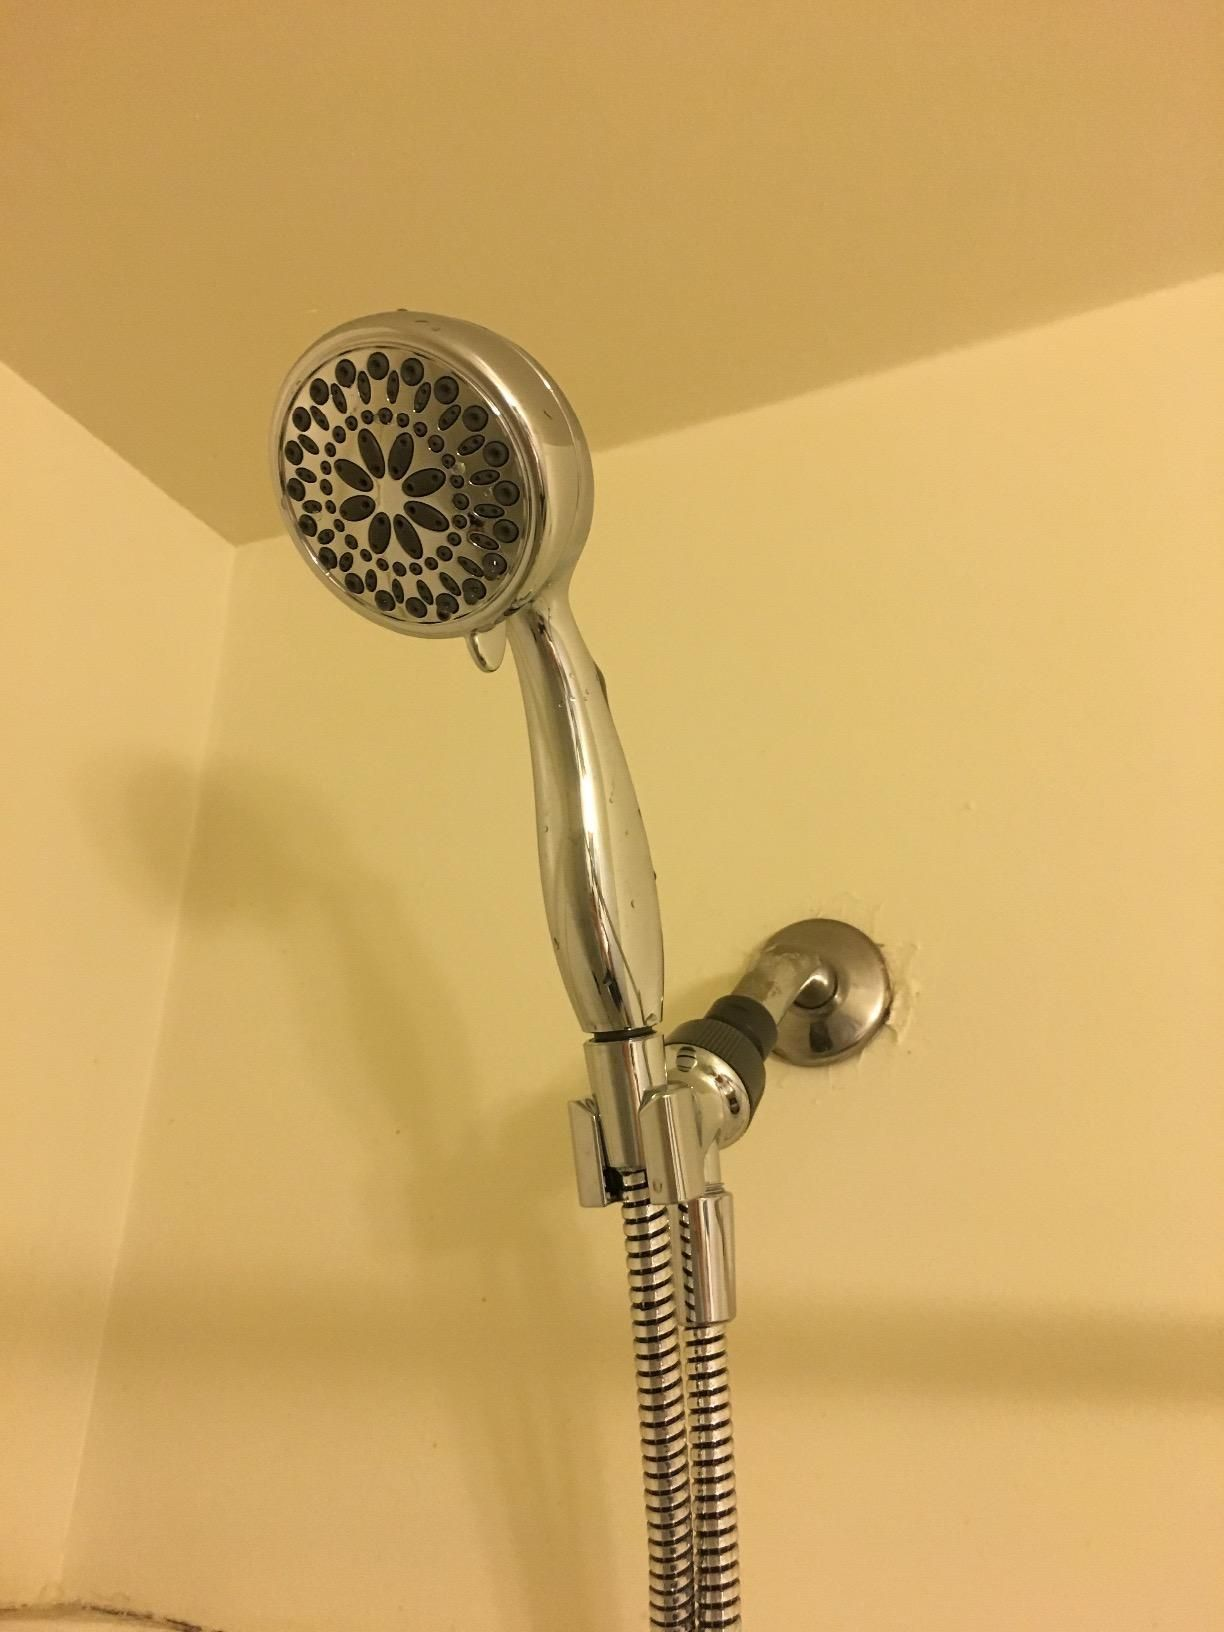 Best Handheld Shower Head Reviews In 2020 Shower Heads Shower